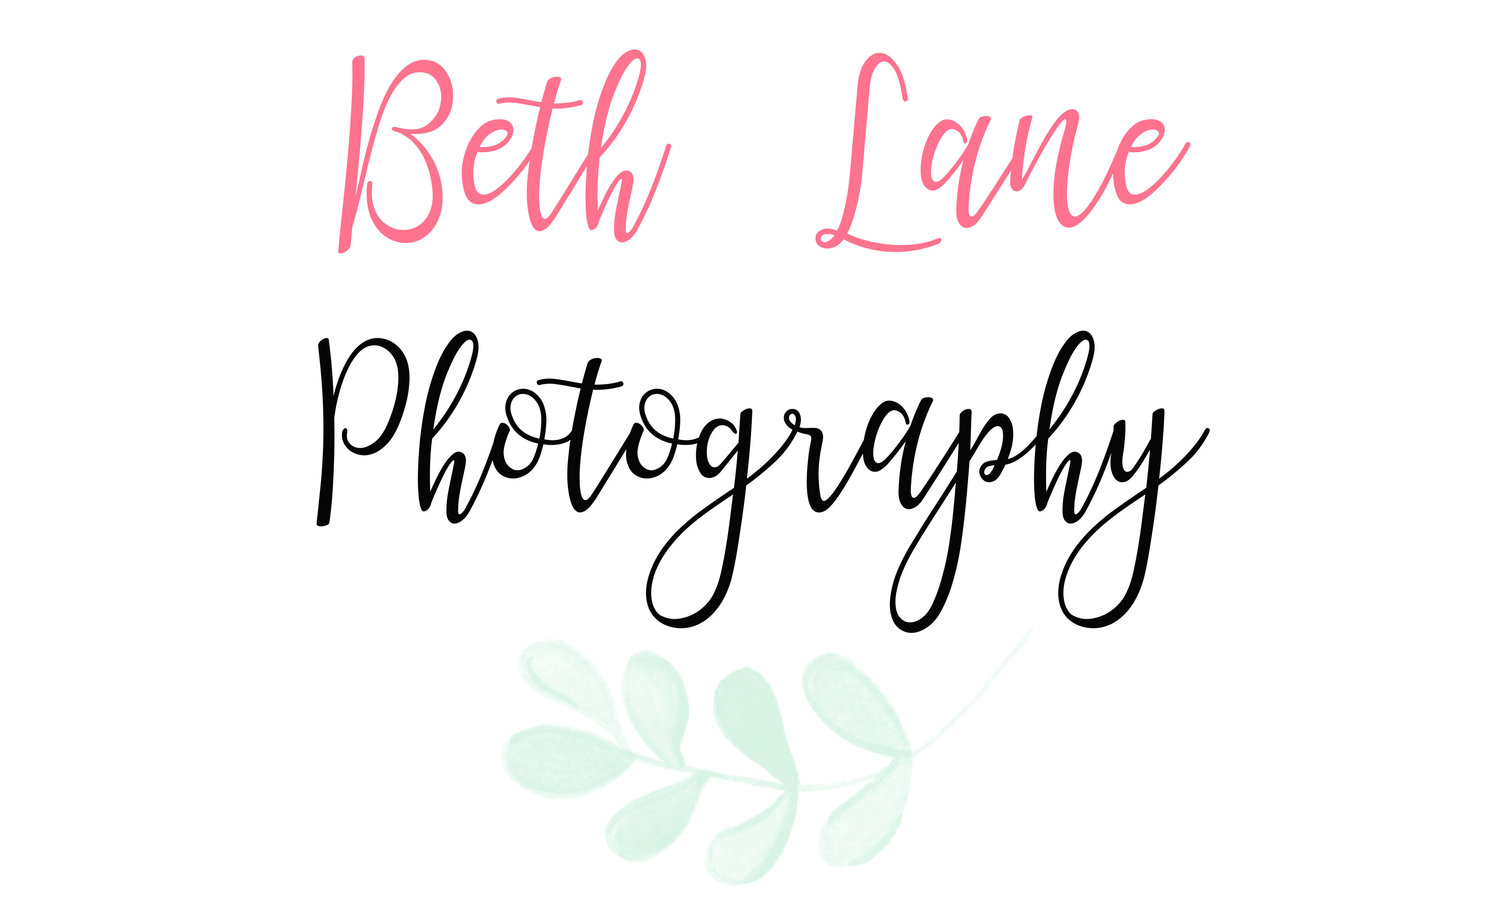 Beth Lane Photography